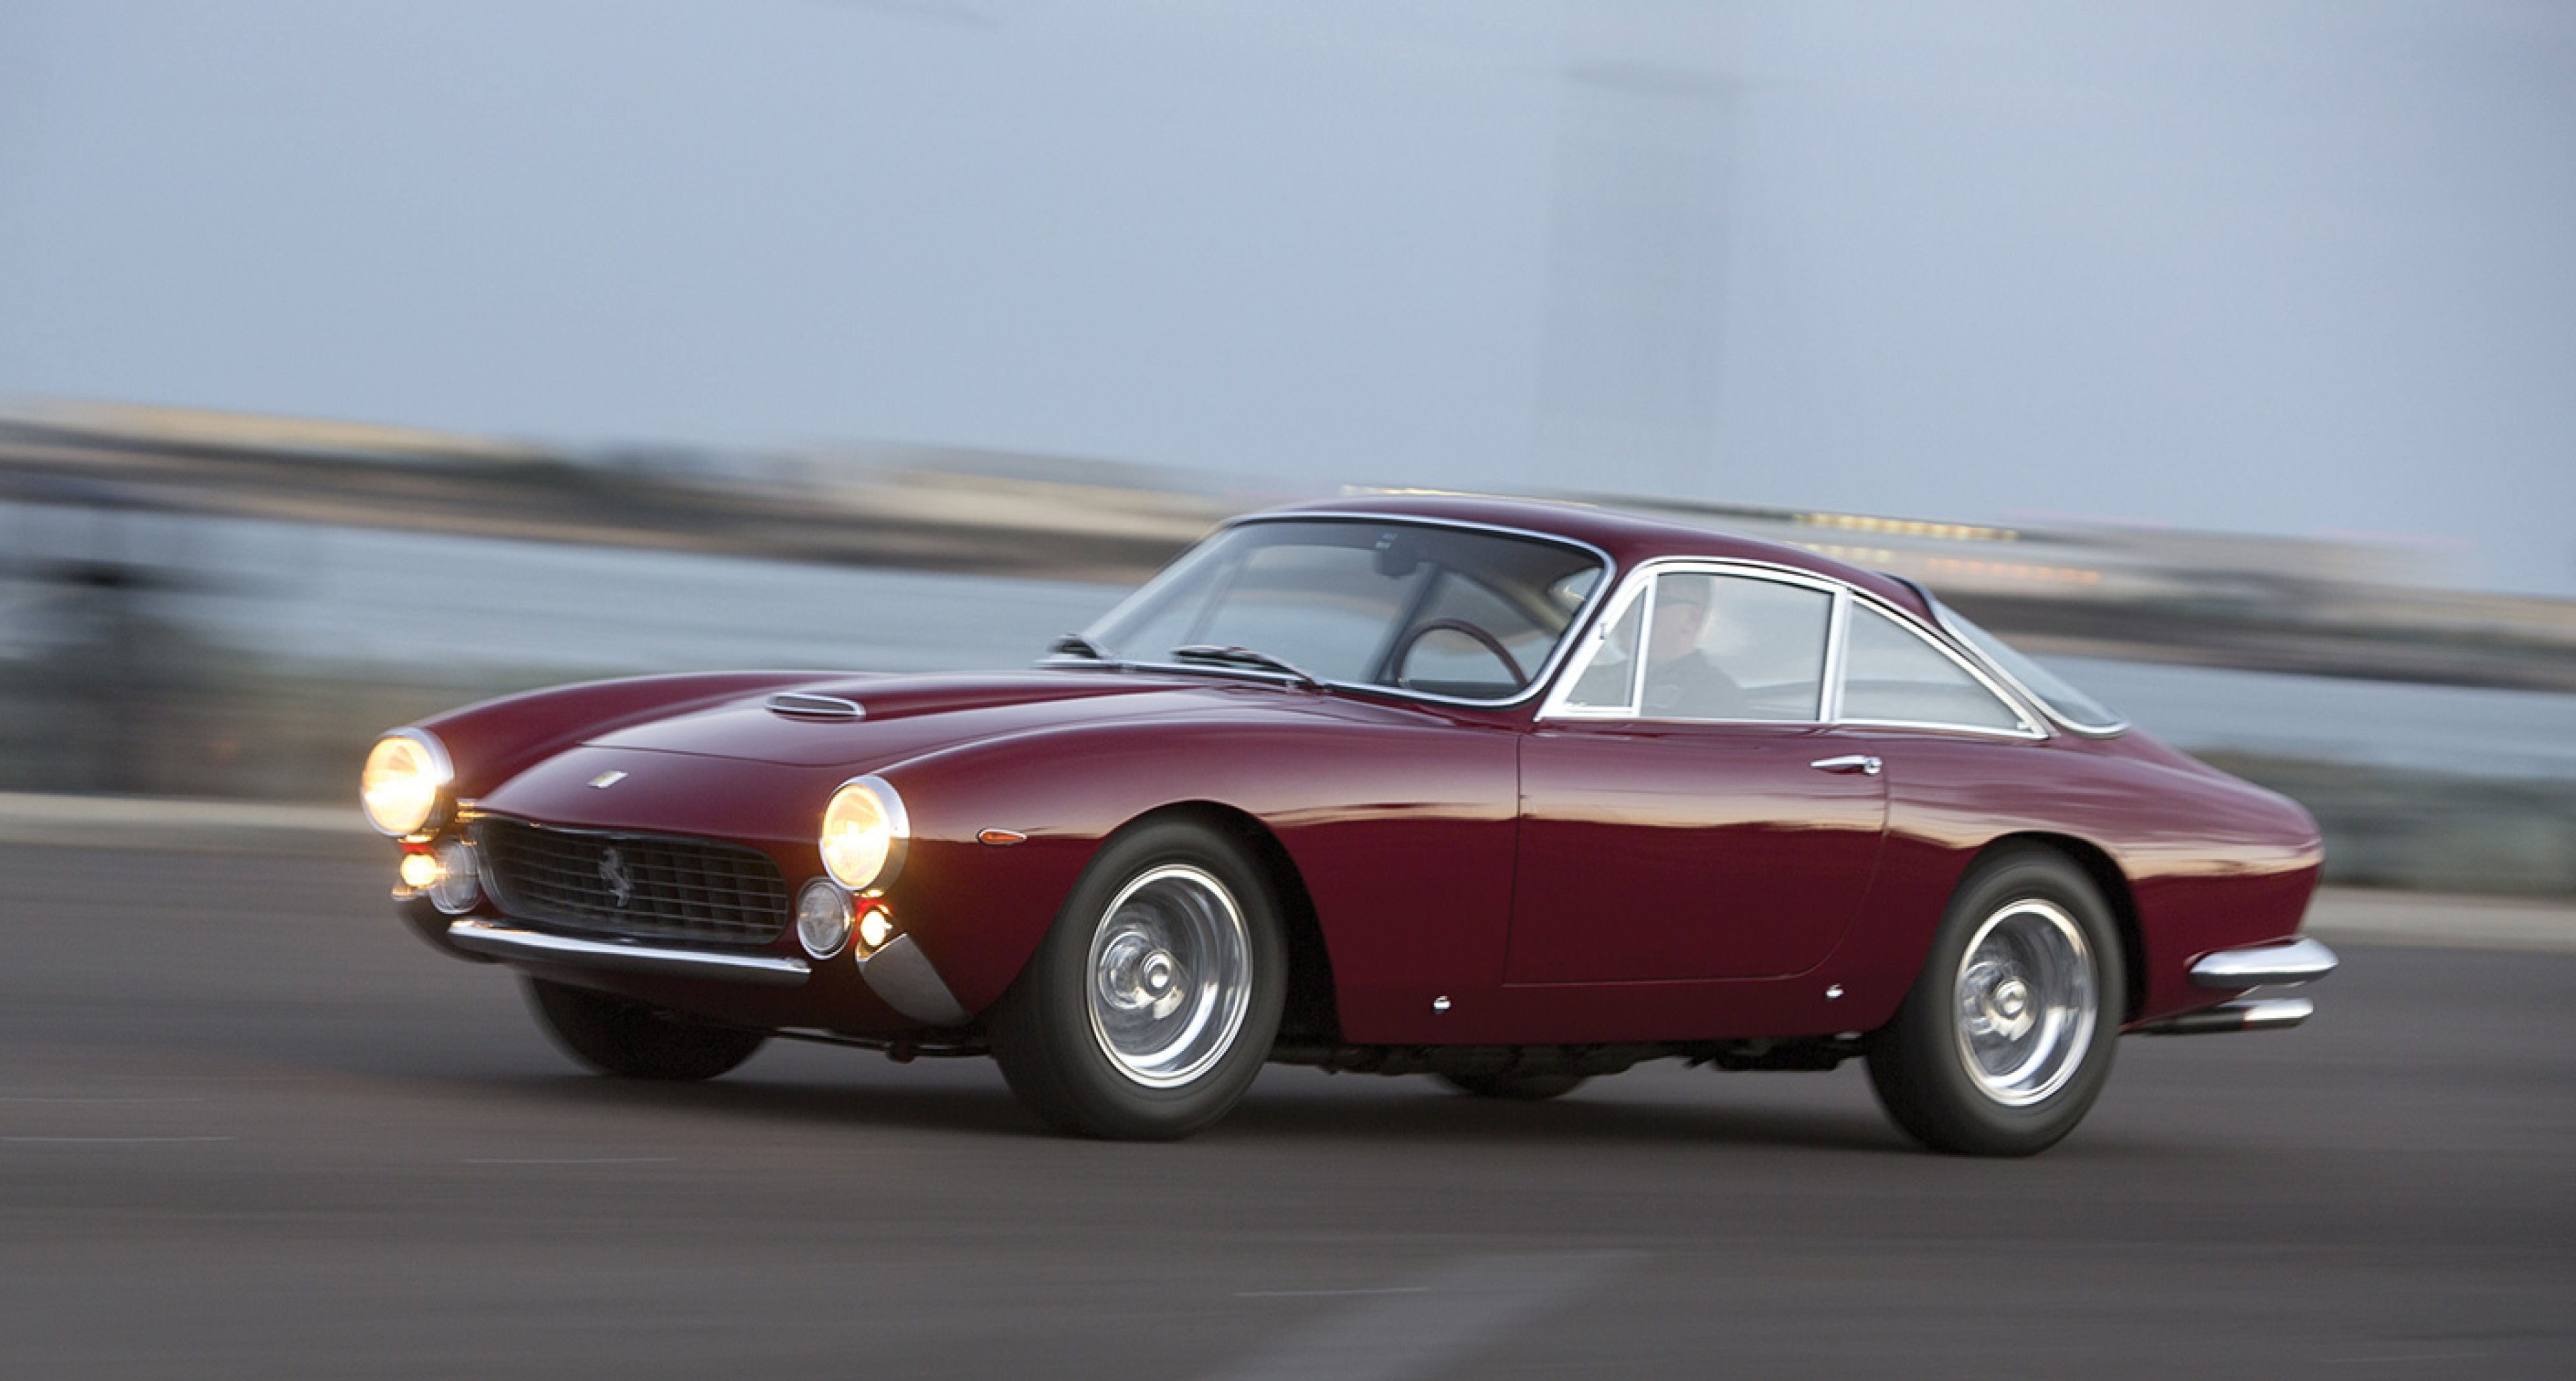 1963 Ferrari 250 GT/L 'Lusso' sold by RM for $2,447,500